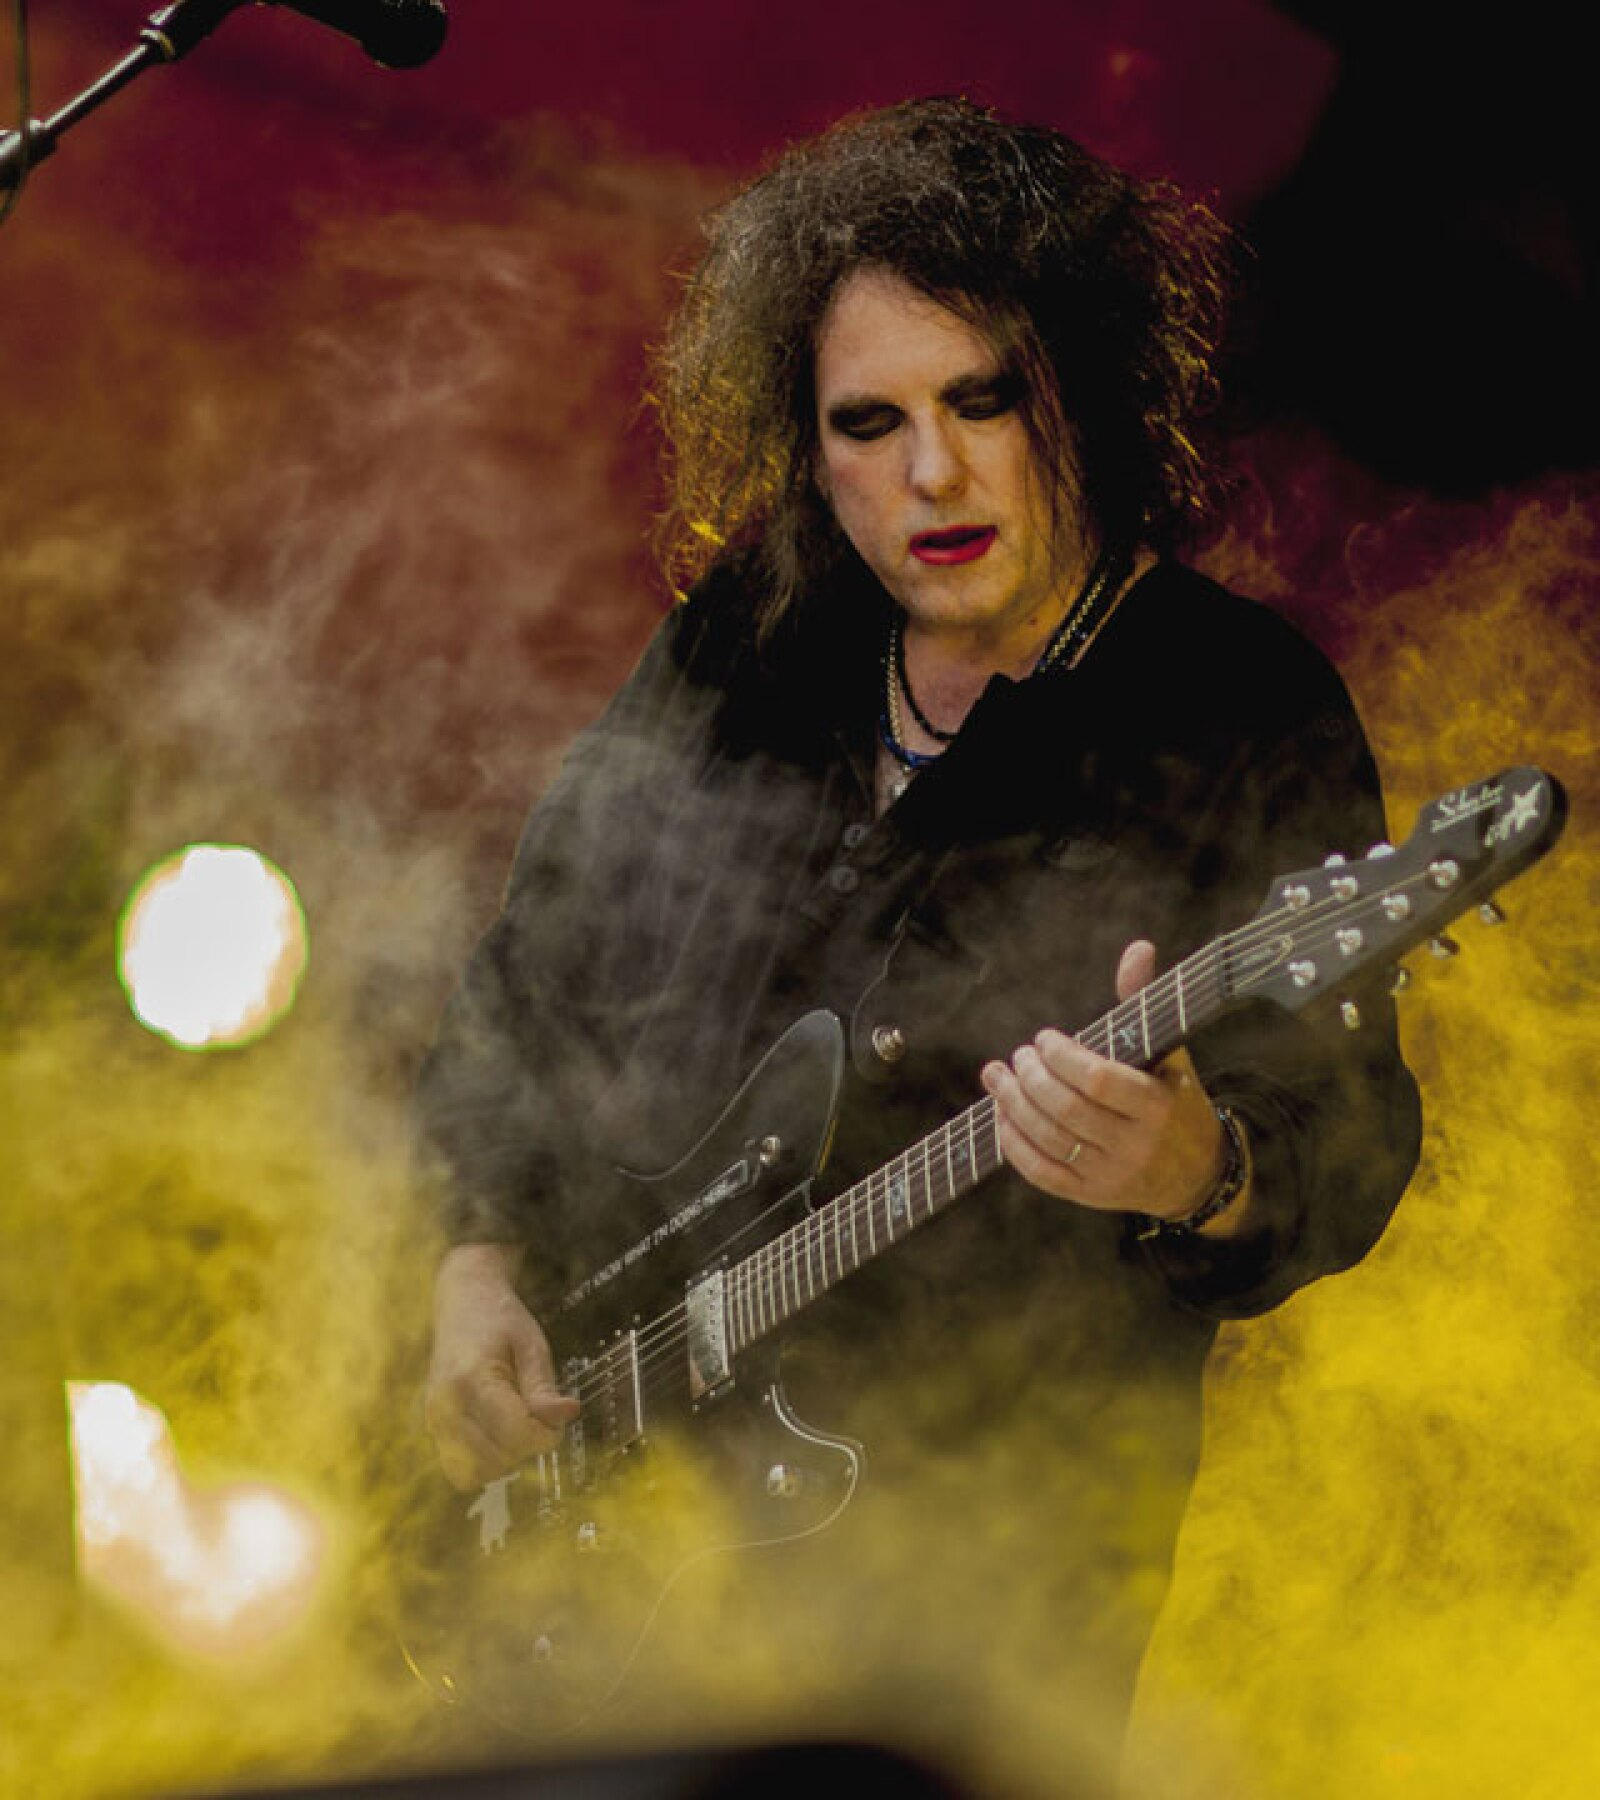 Robert Smith de la banda británica The Cure prefiere el color rojo encendido para los labios.